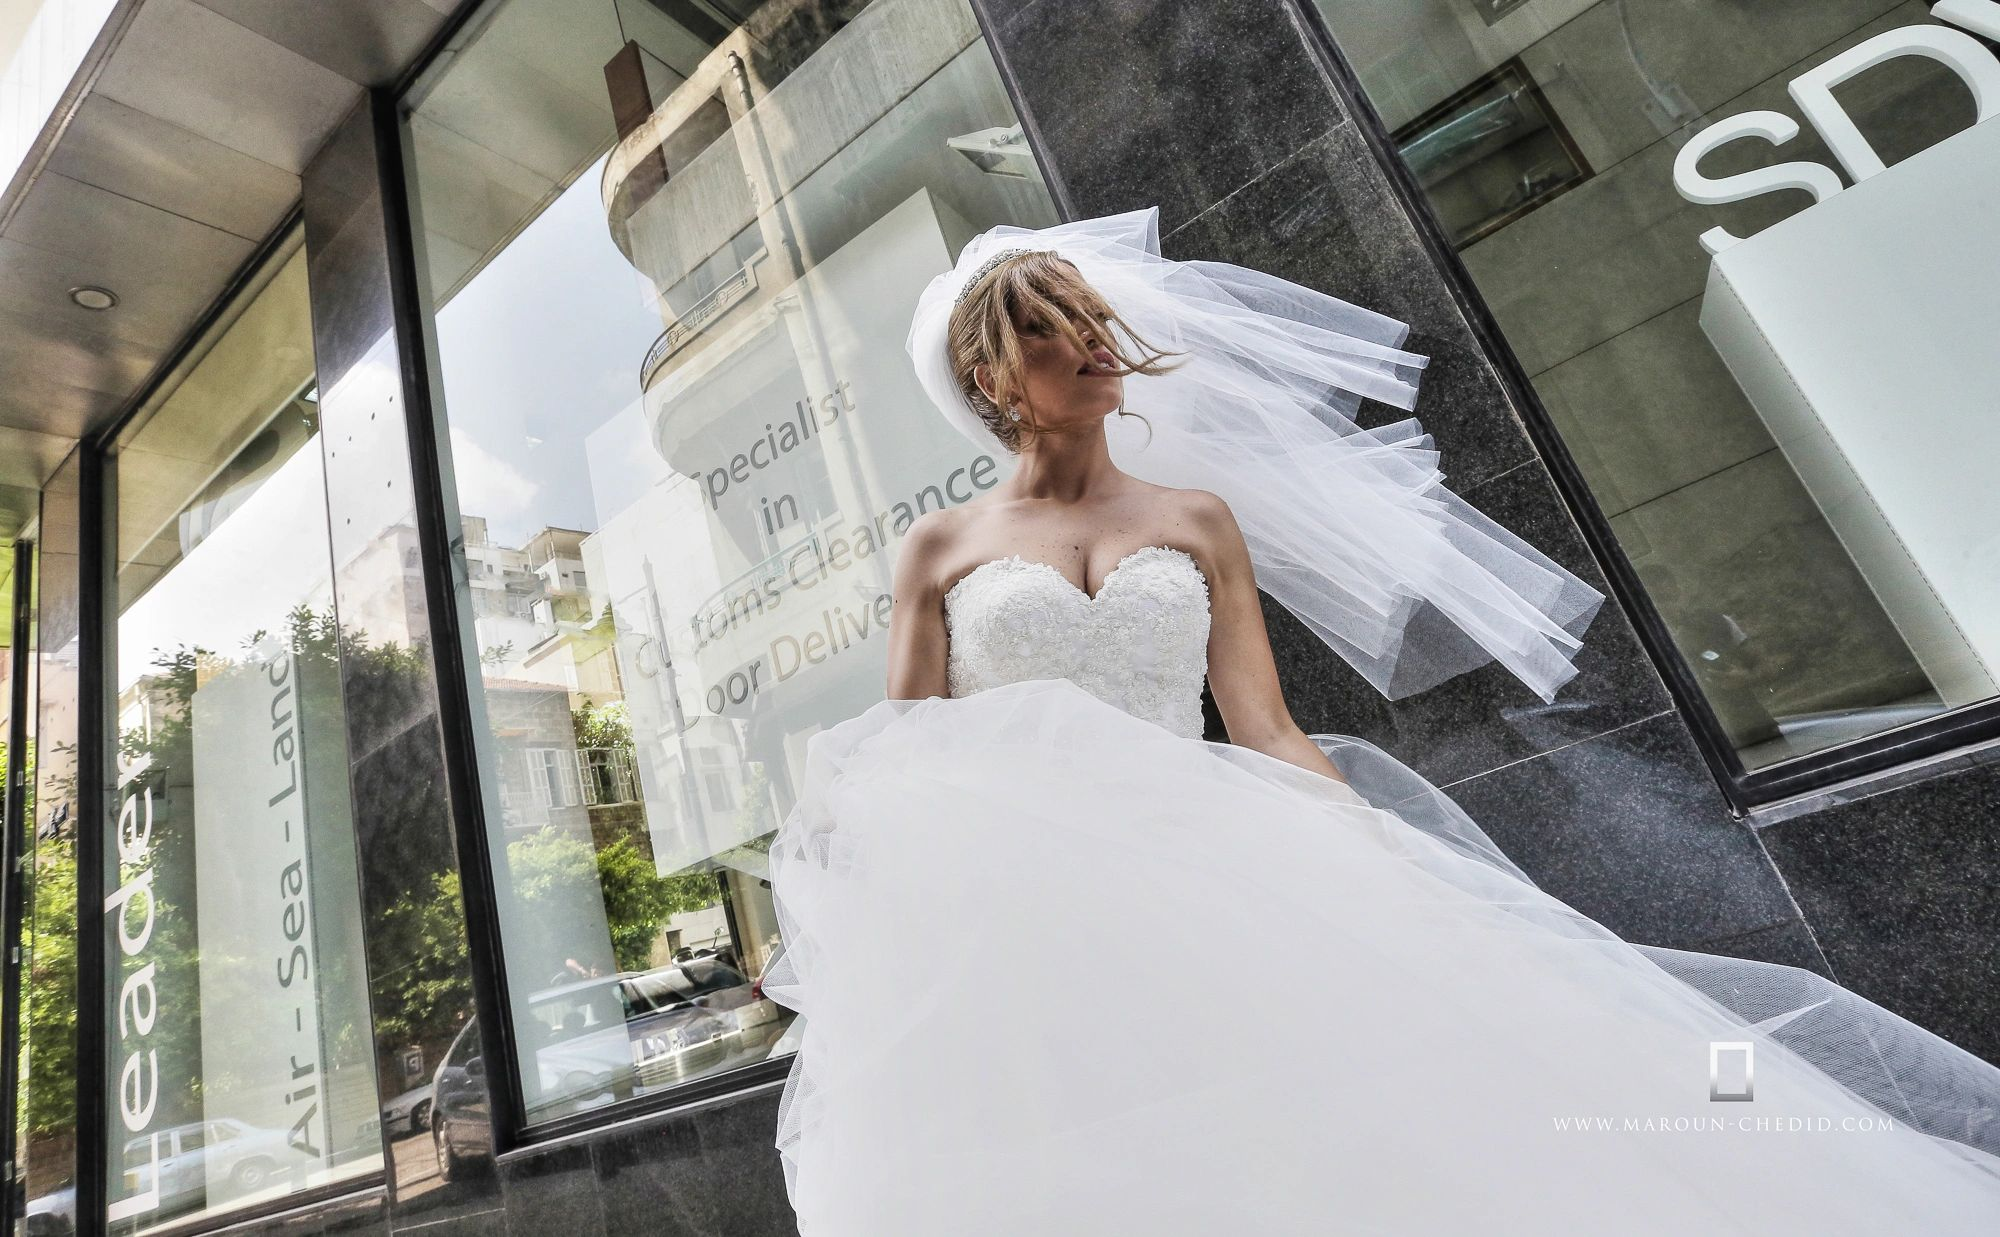 wedding photography in lebanon and emirate area member in fearless photographer for the best wedding